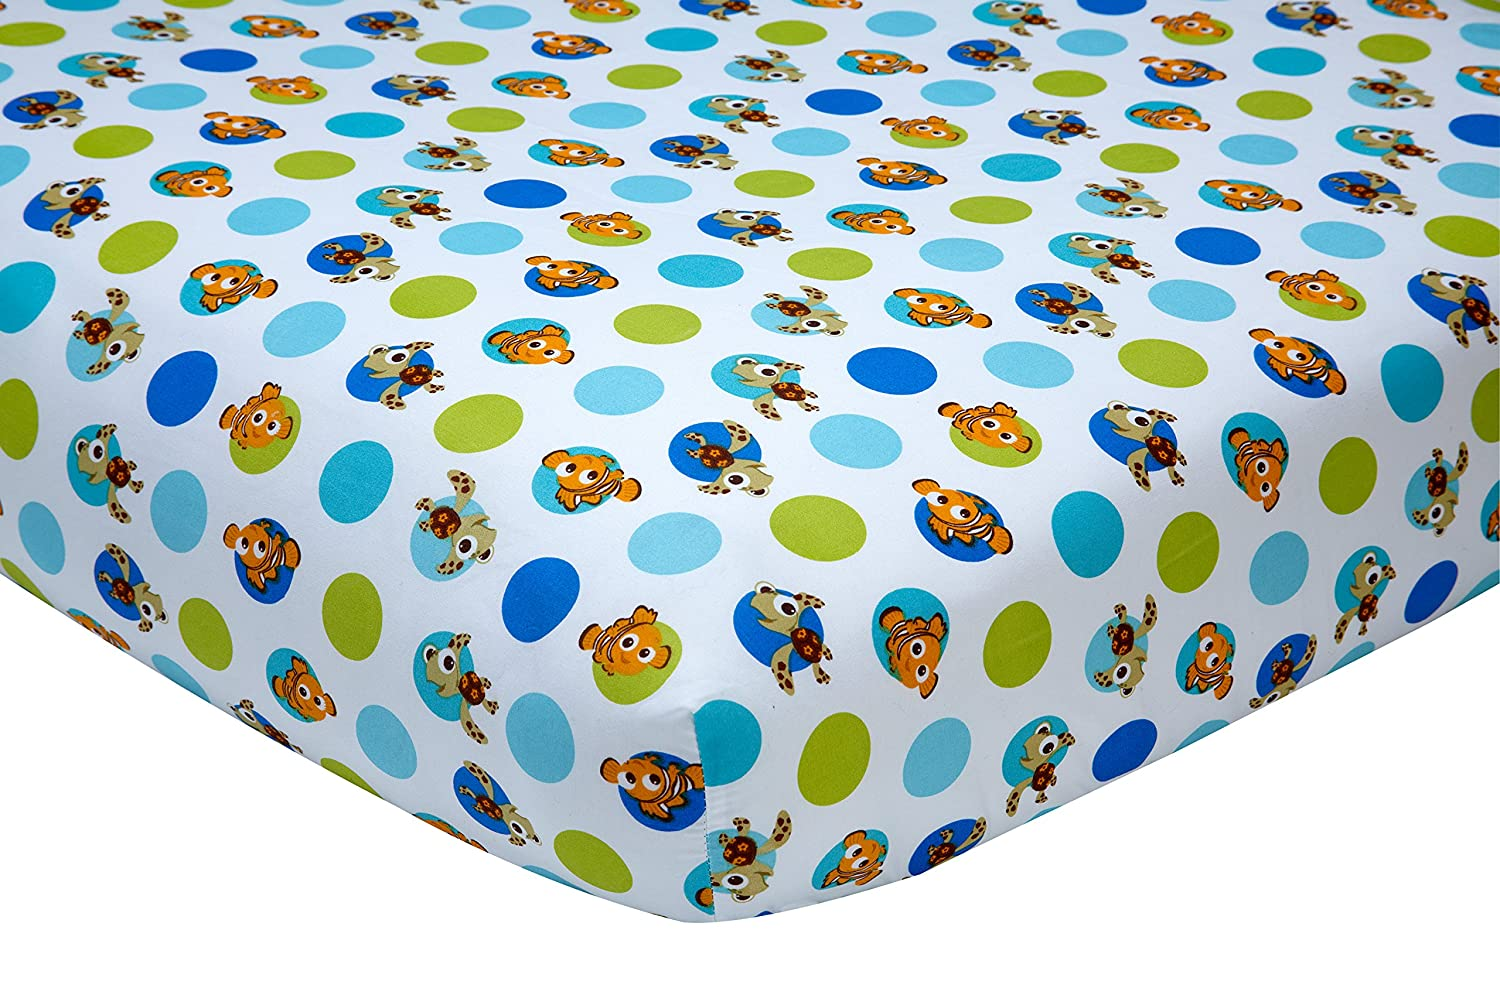 Disney Nemo 2 Piece Crib Sheet Set